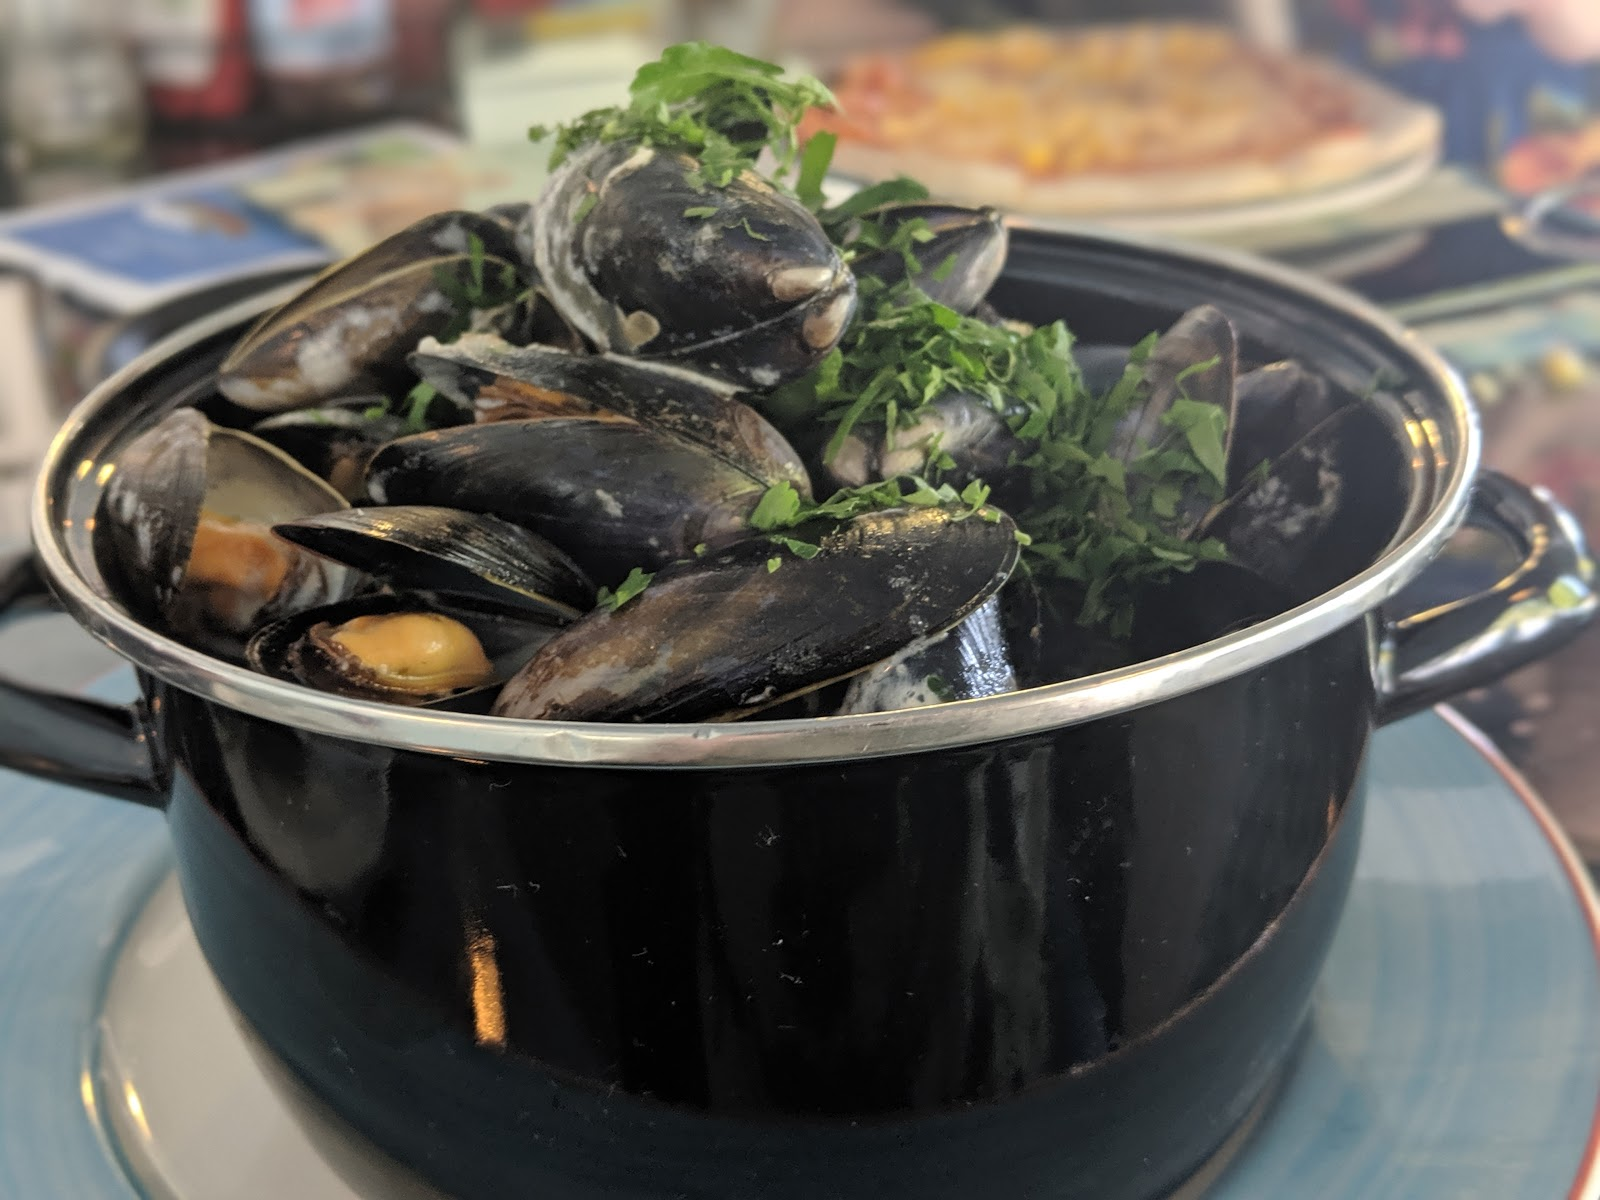 A Short Break at Cameron Lodges, Loch Lomond - the boat house - huge bowl of mussels